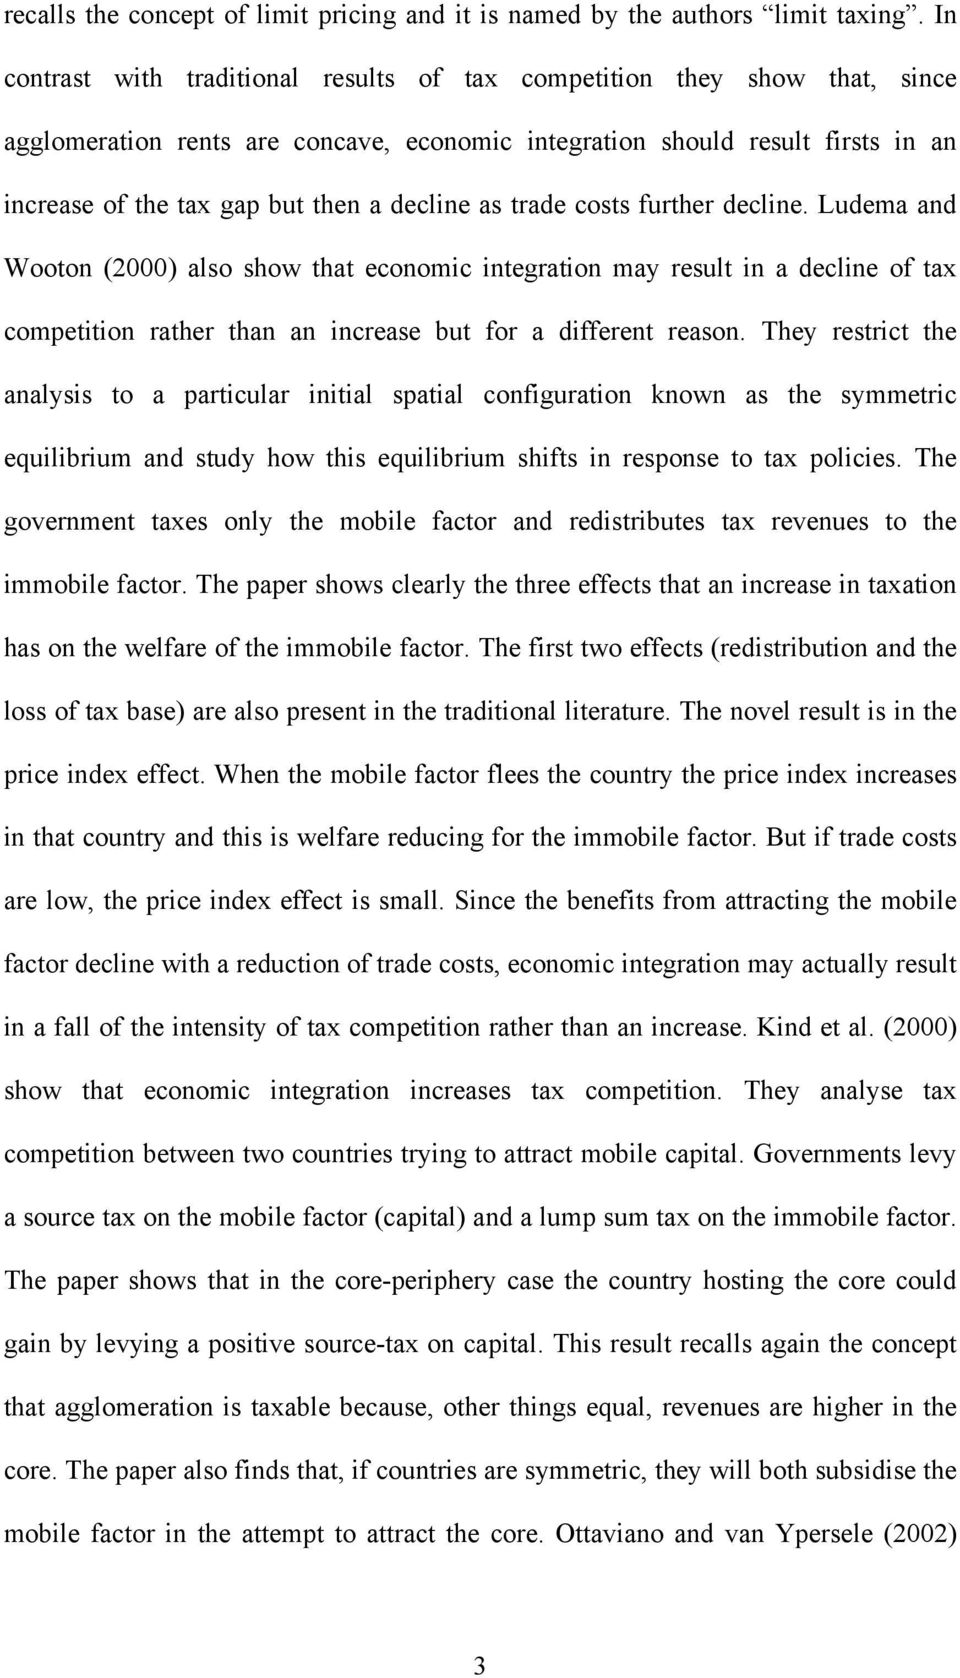 decline as trade costs further decline. Ludema and Wooton (2000) also show that economic integration may result in a decline of tax competition rather than an increase but for a different reason.